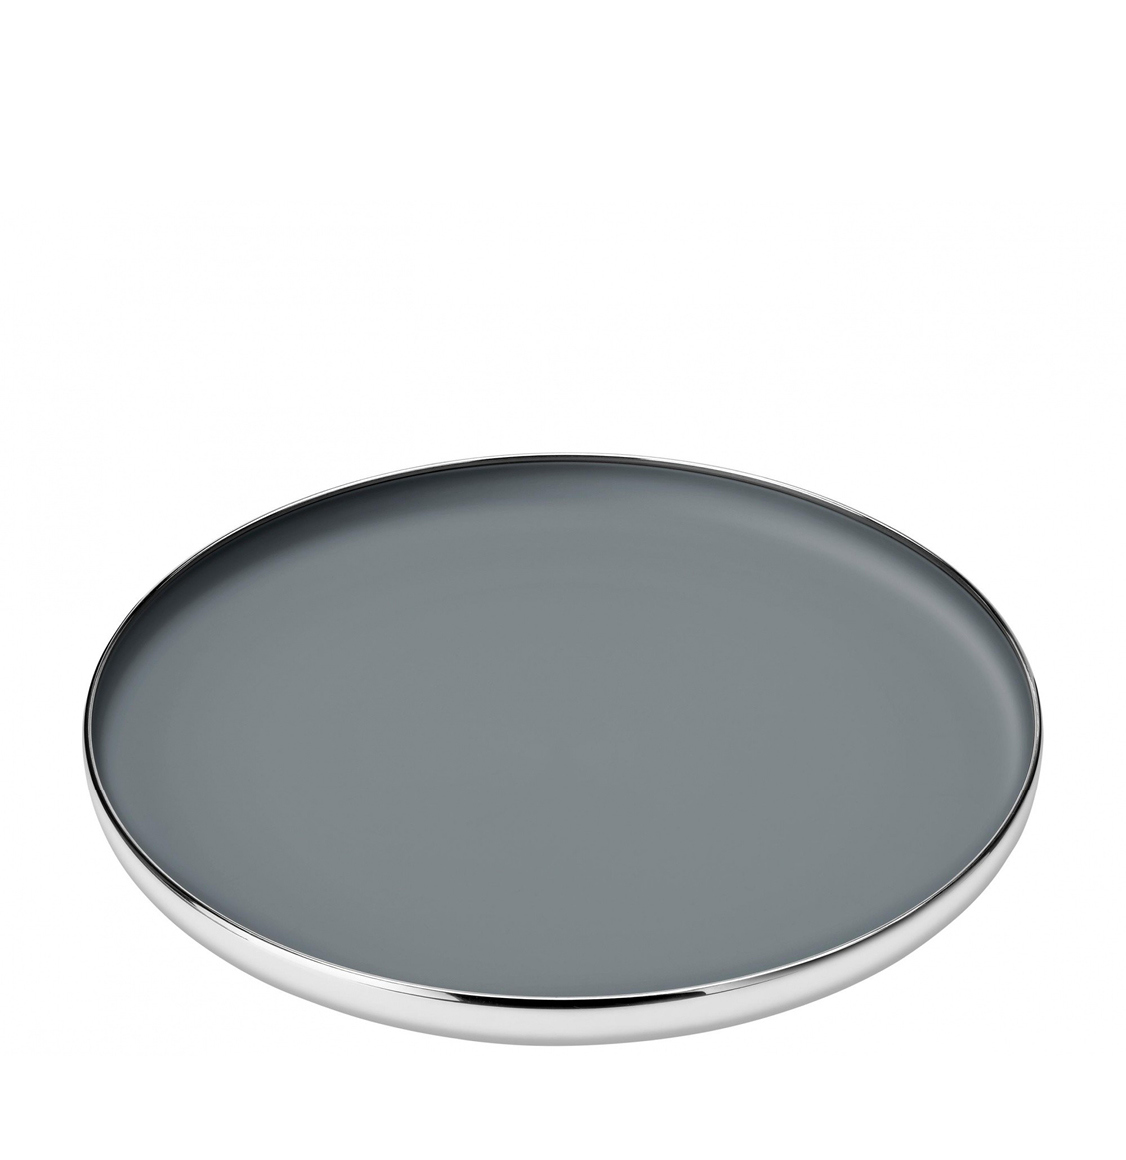 Stelton_Foster_Serving_Tray_The_Project_Garments_A